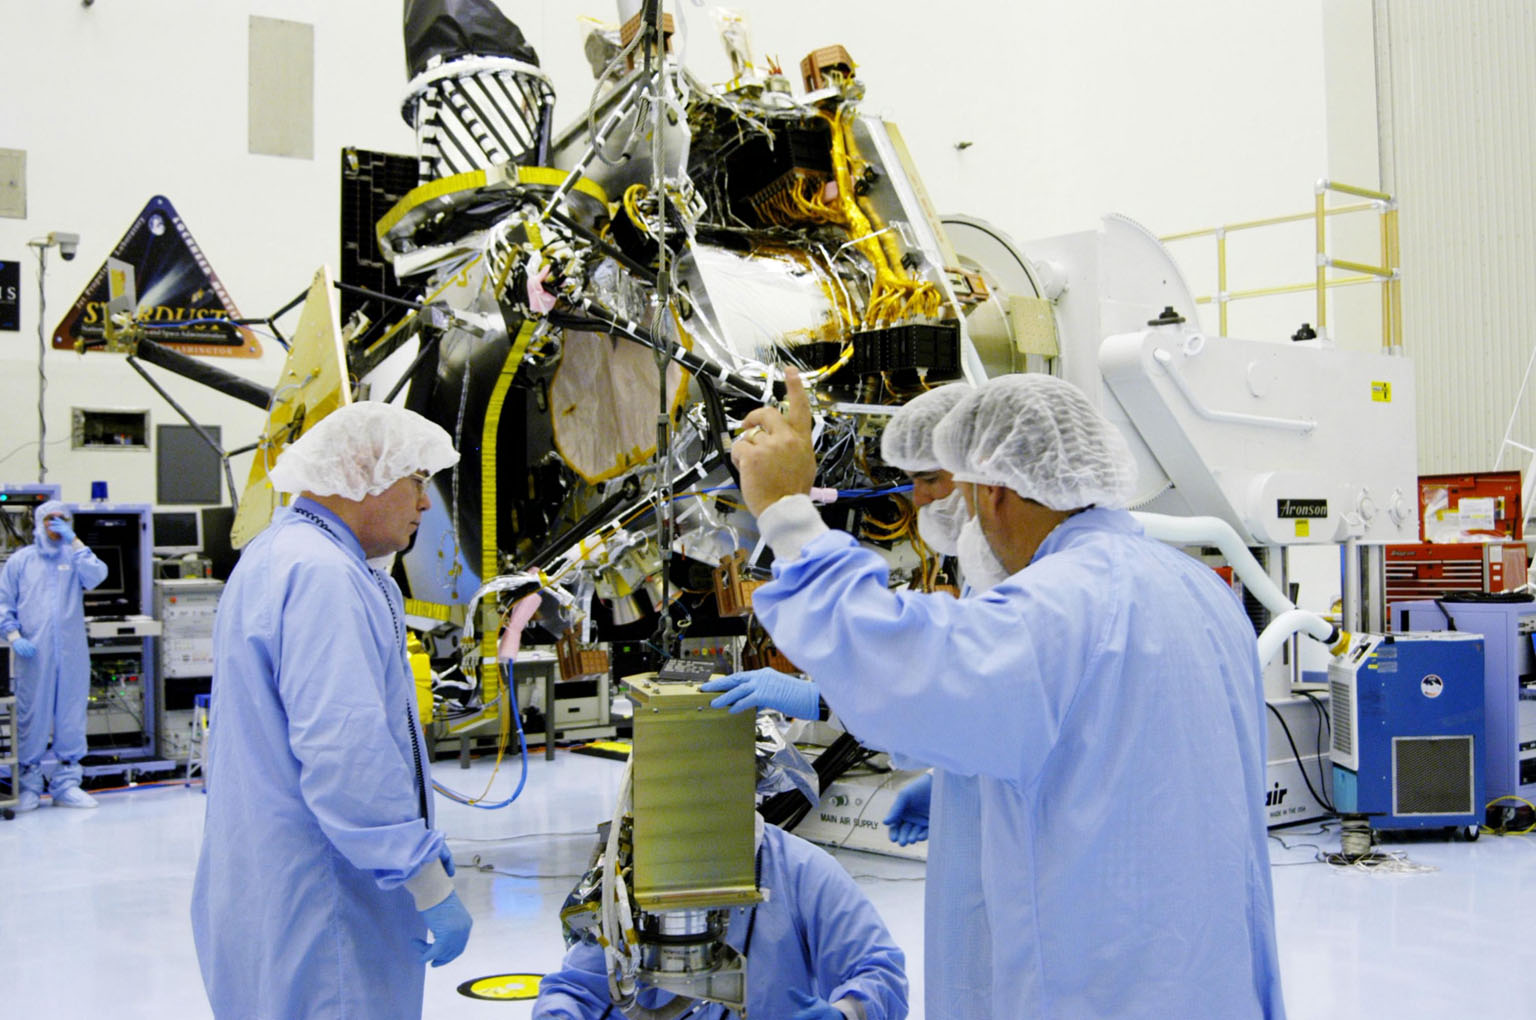 KENNEDY SPACE CENTER, FLA. - In the Payload Hazardous Servicing Facility at NASA?s Kennedy Space Center, engineers prepare to install the gimbal on the Mars Reconnaissance Orbiter (MRO) solar panel. A gimbal is an appliance that allows an object to remain horizontal even as its support tips. In the background is the orbiter. In the PHSF, the spacecraft will undergo multiple mechanical assembly operations and electrical tests to verify its readiness for launch. A major deployment test will check out the spacecraft?s large solar arrays. The MRO was built by Lockheed Martin for NASA?s Jet Propulsion Laboratory in California. It is the next major step in Mars exploration and scheduled for launch from Cape Canaveral Air Force Station in a window opening Aug. 10. The MRO is an important next step in fulfilling NASA?s vision of space exploration and ultimately sending human explorers to Mars and beyond.